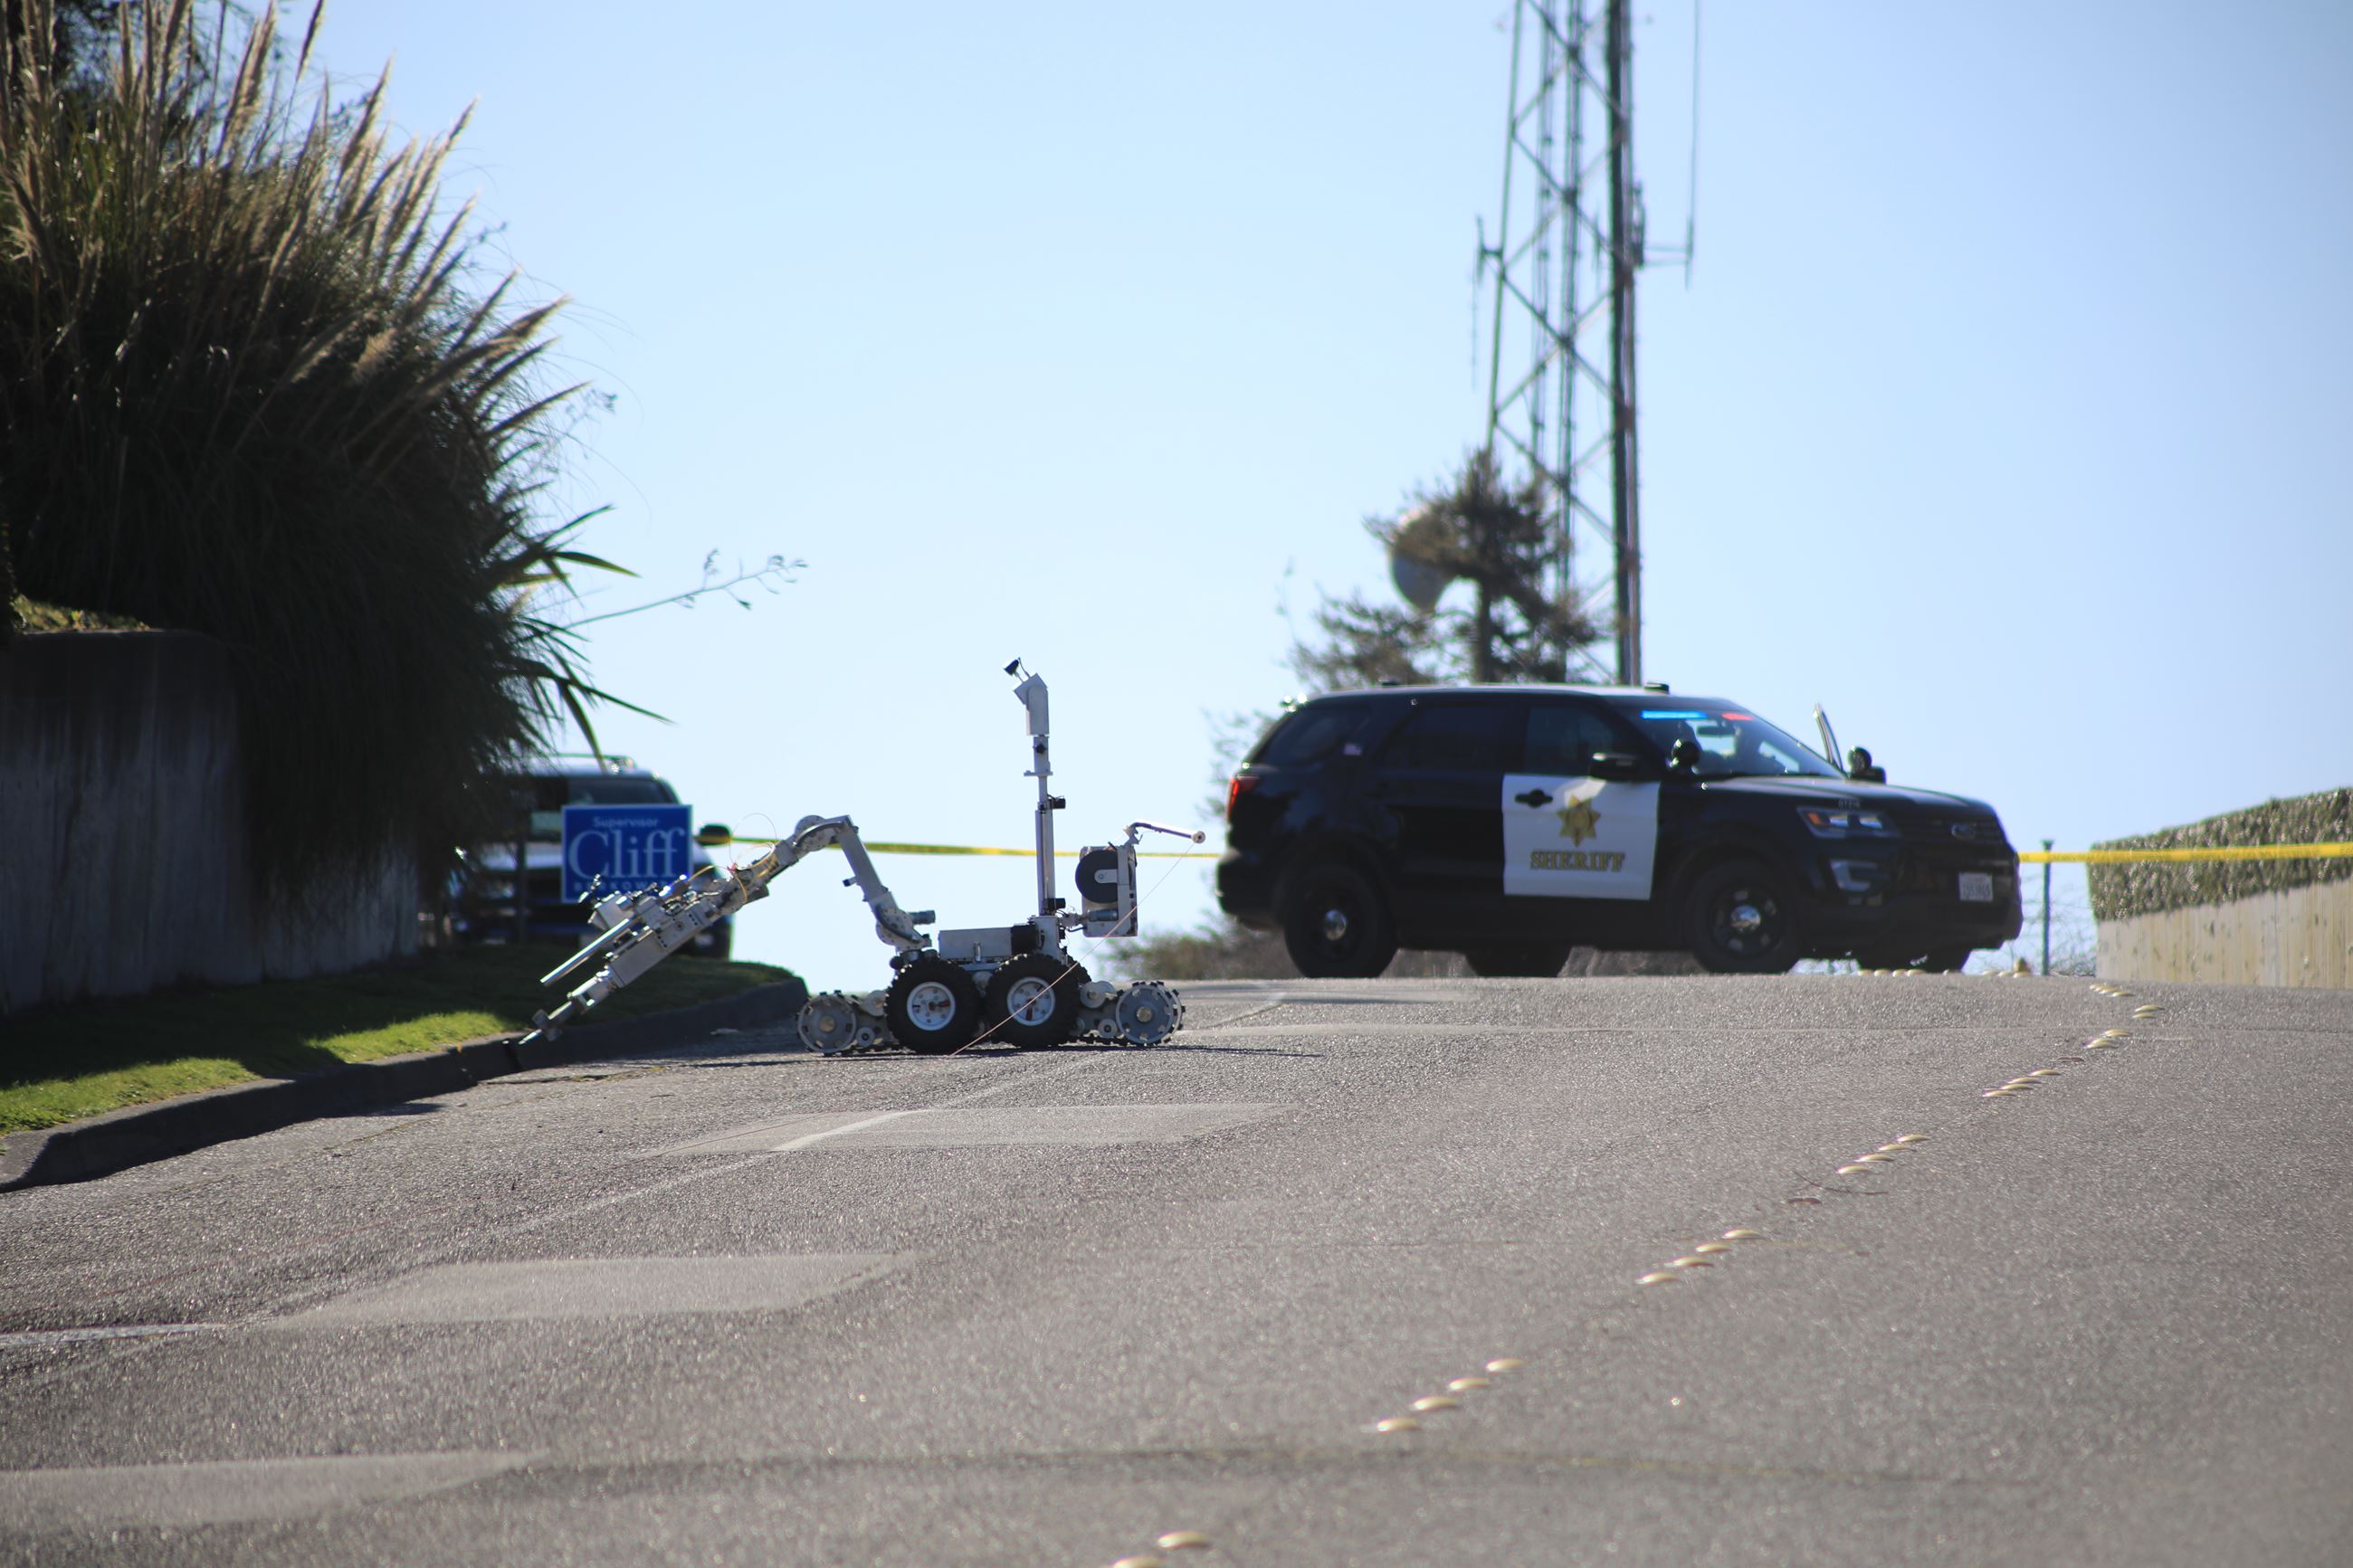 An EOD Robot investigates a suspicious object with a sheriff patrol car in the background